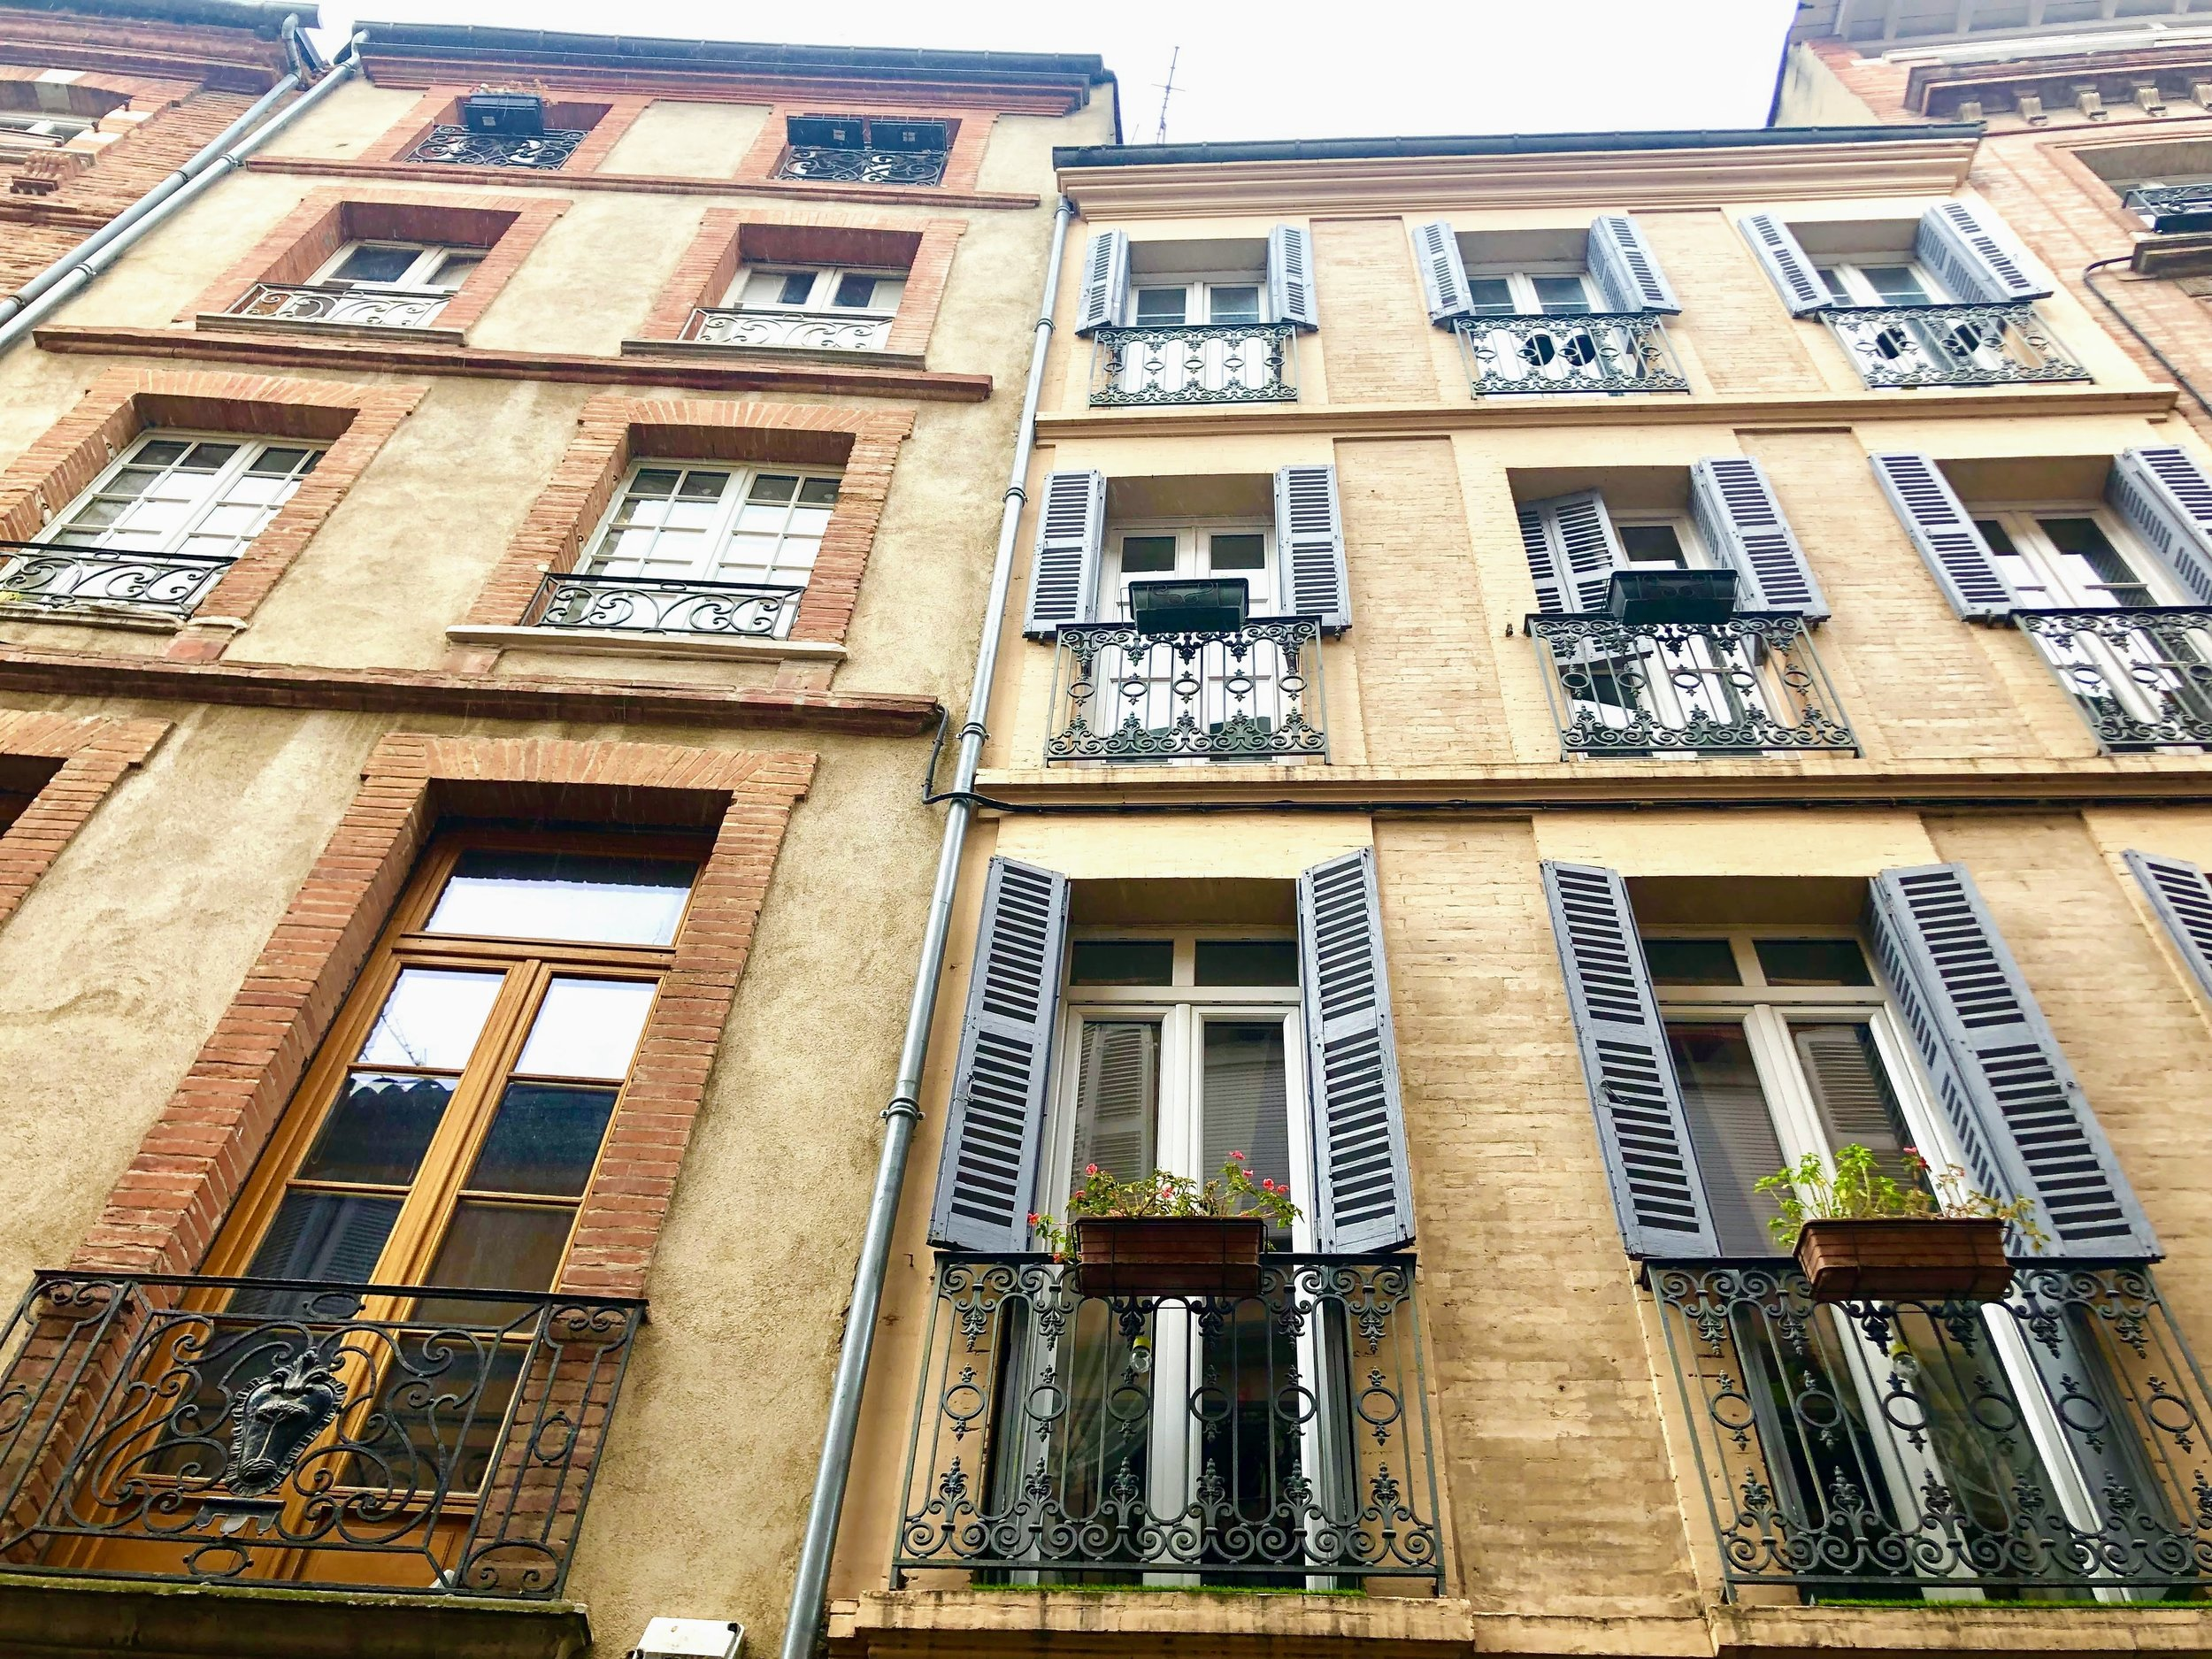 Street view in Toulouse. Copyright @Thisgiantworld